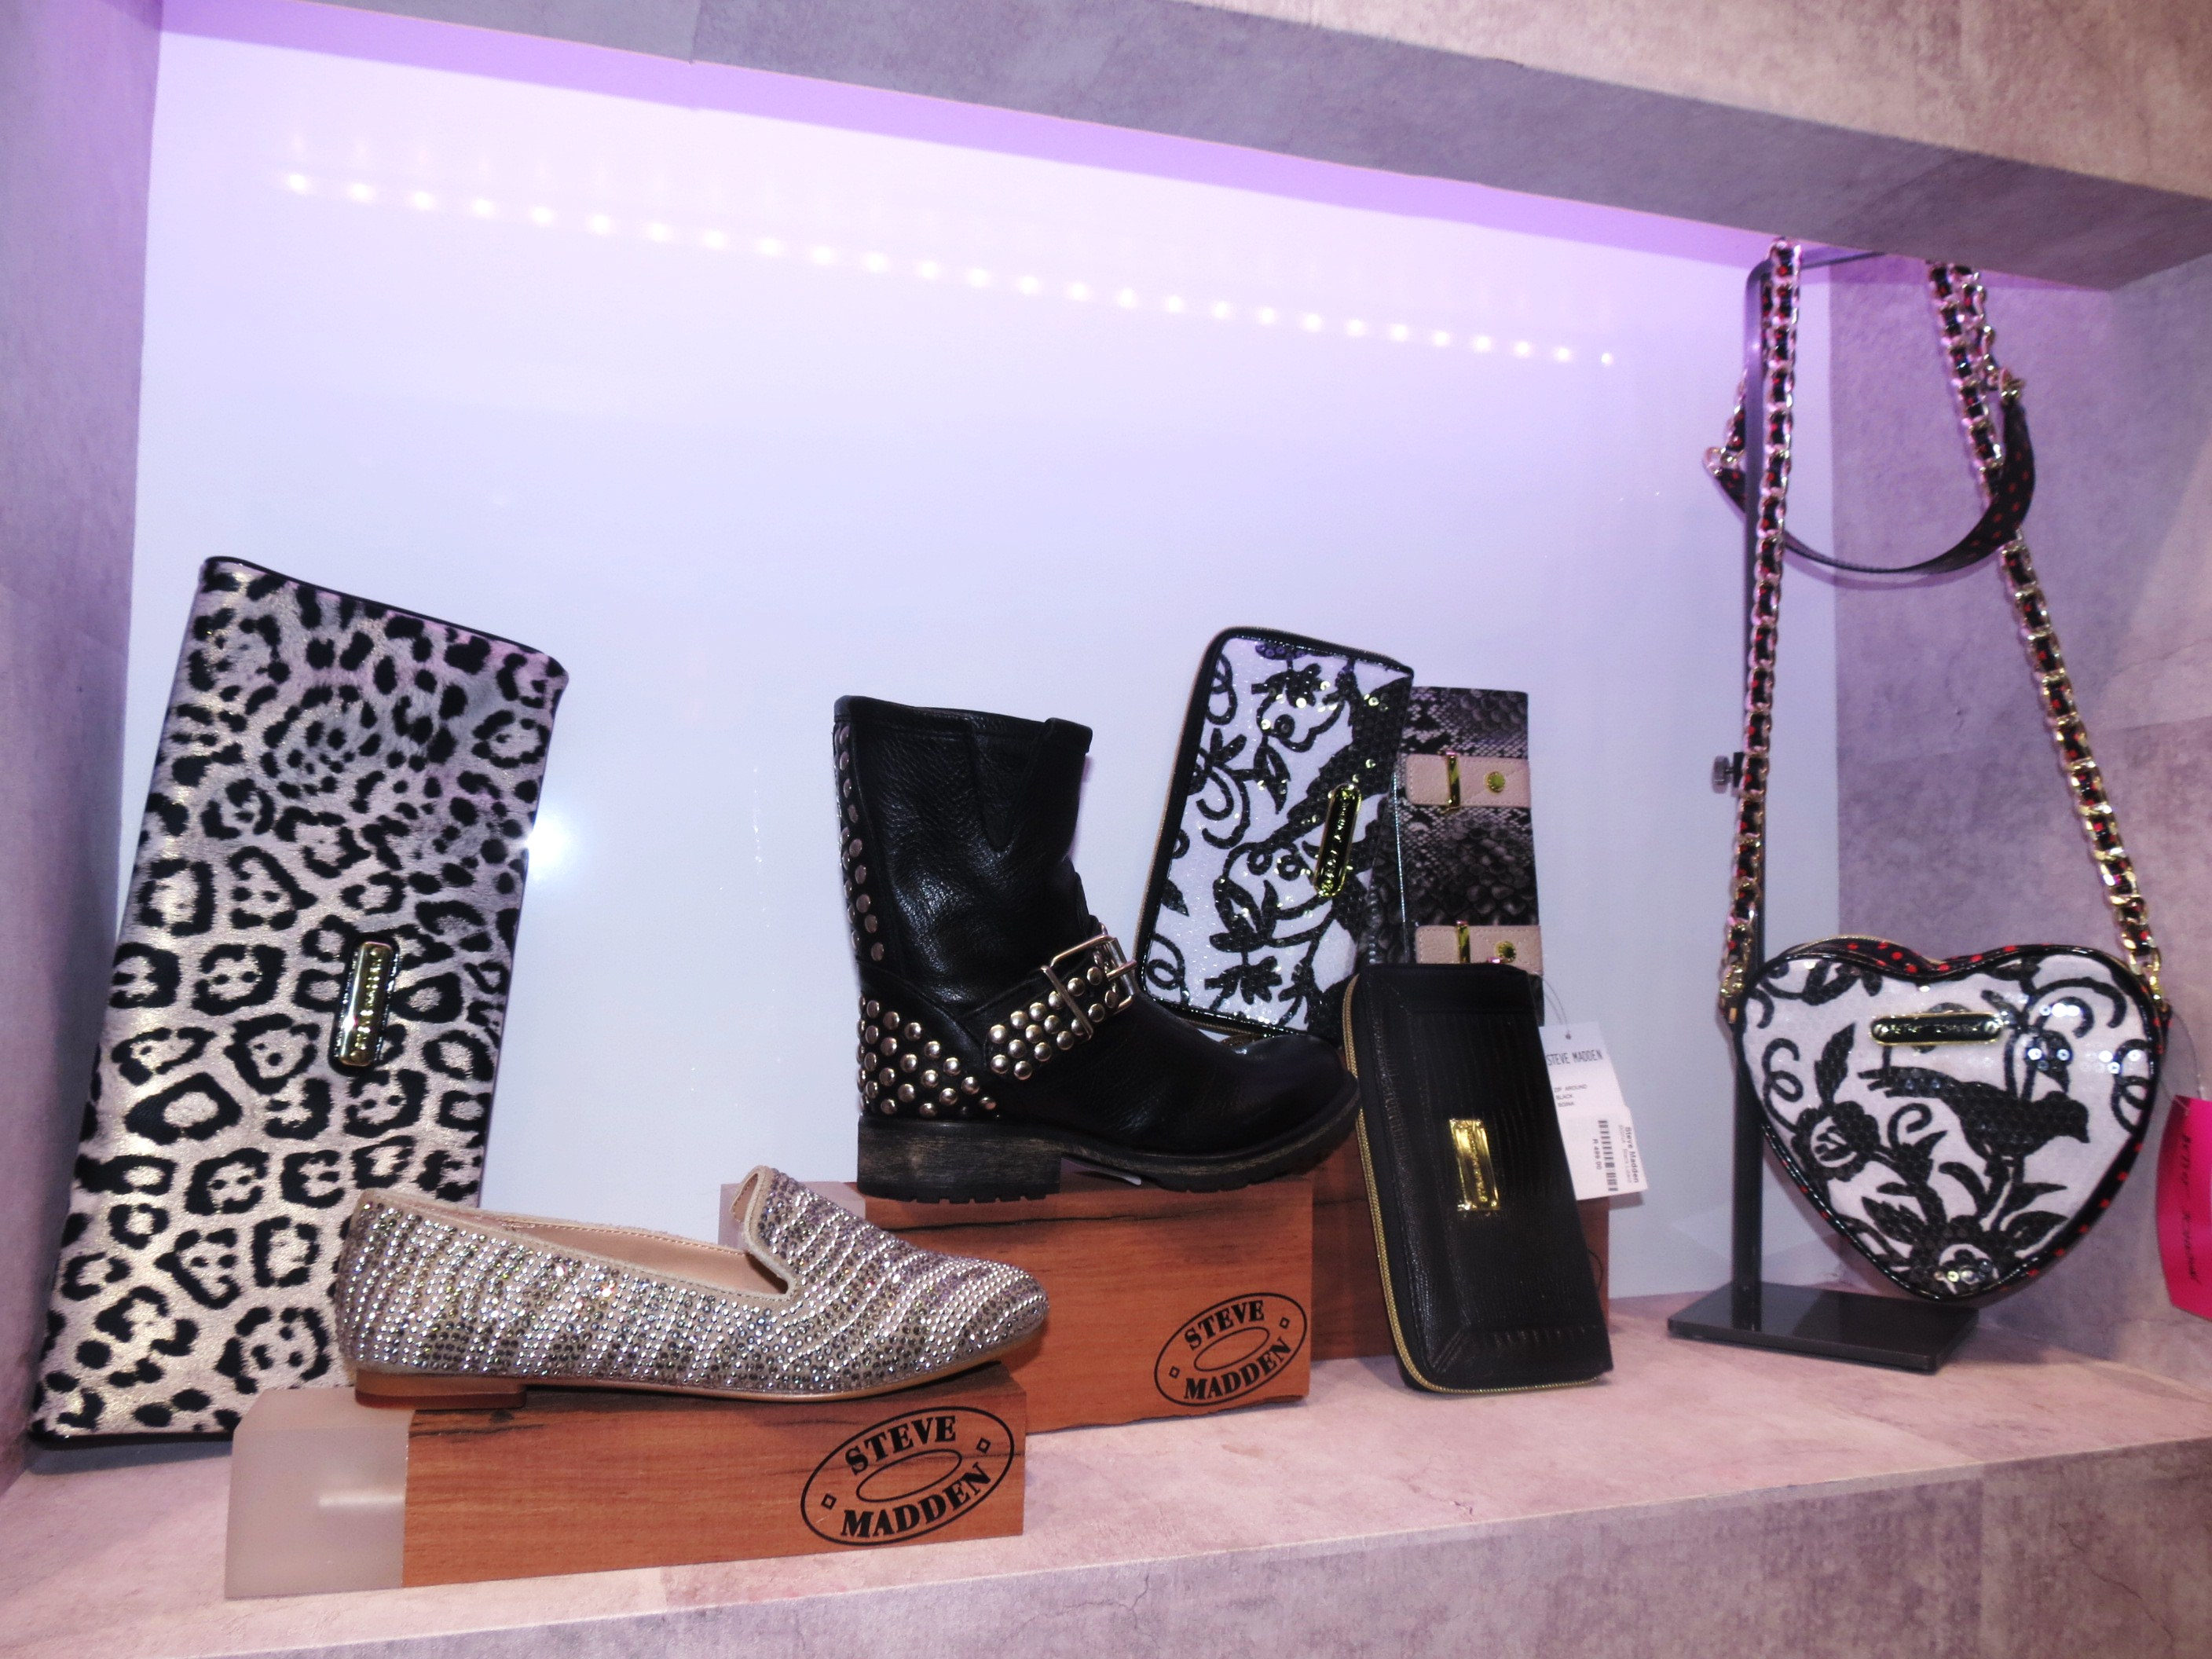 steve madden store in cape town